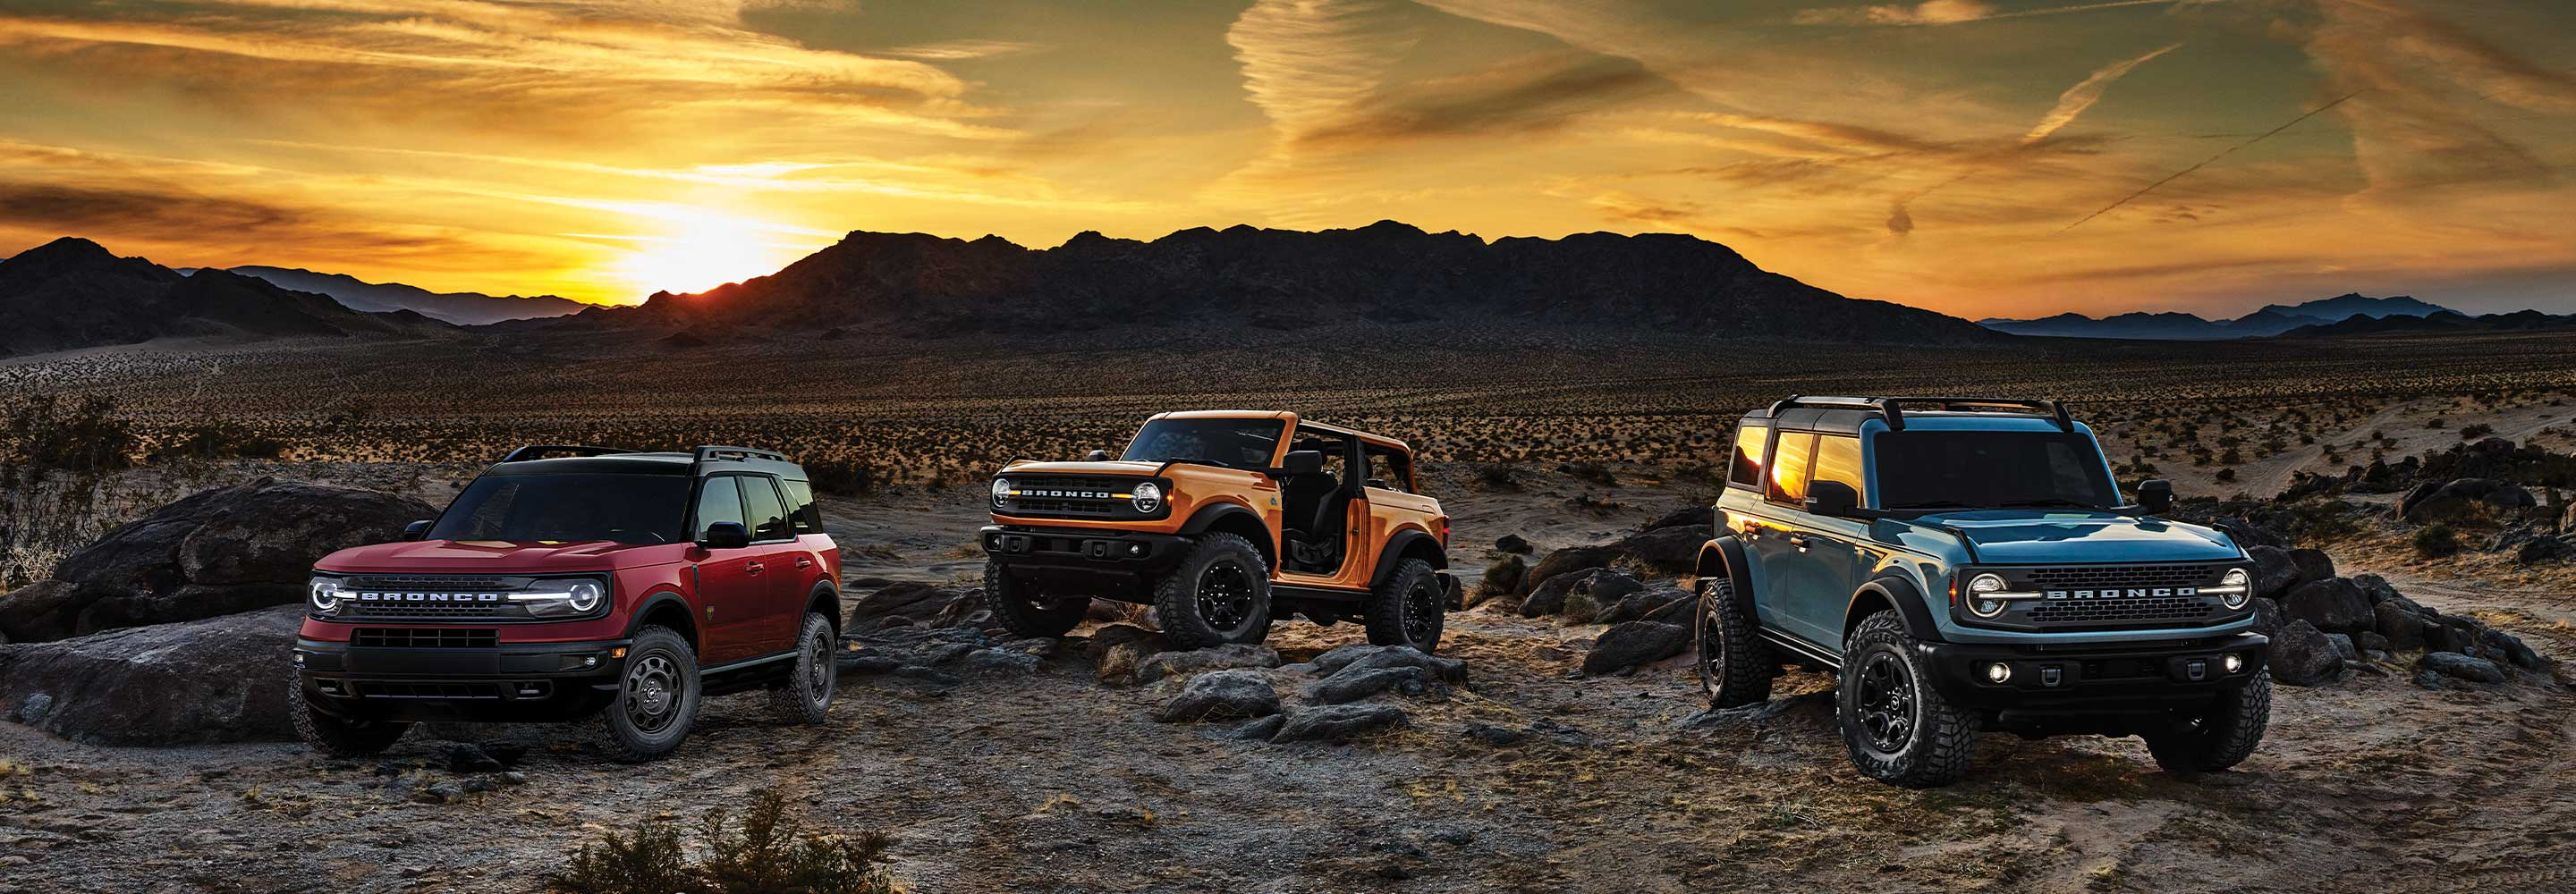 The New 2021 Ford Bronco Gets Built Wild